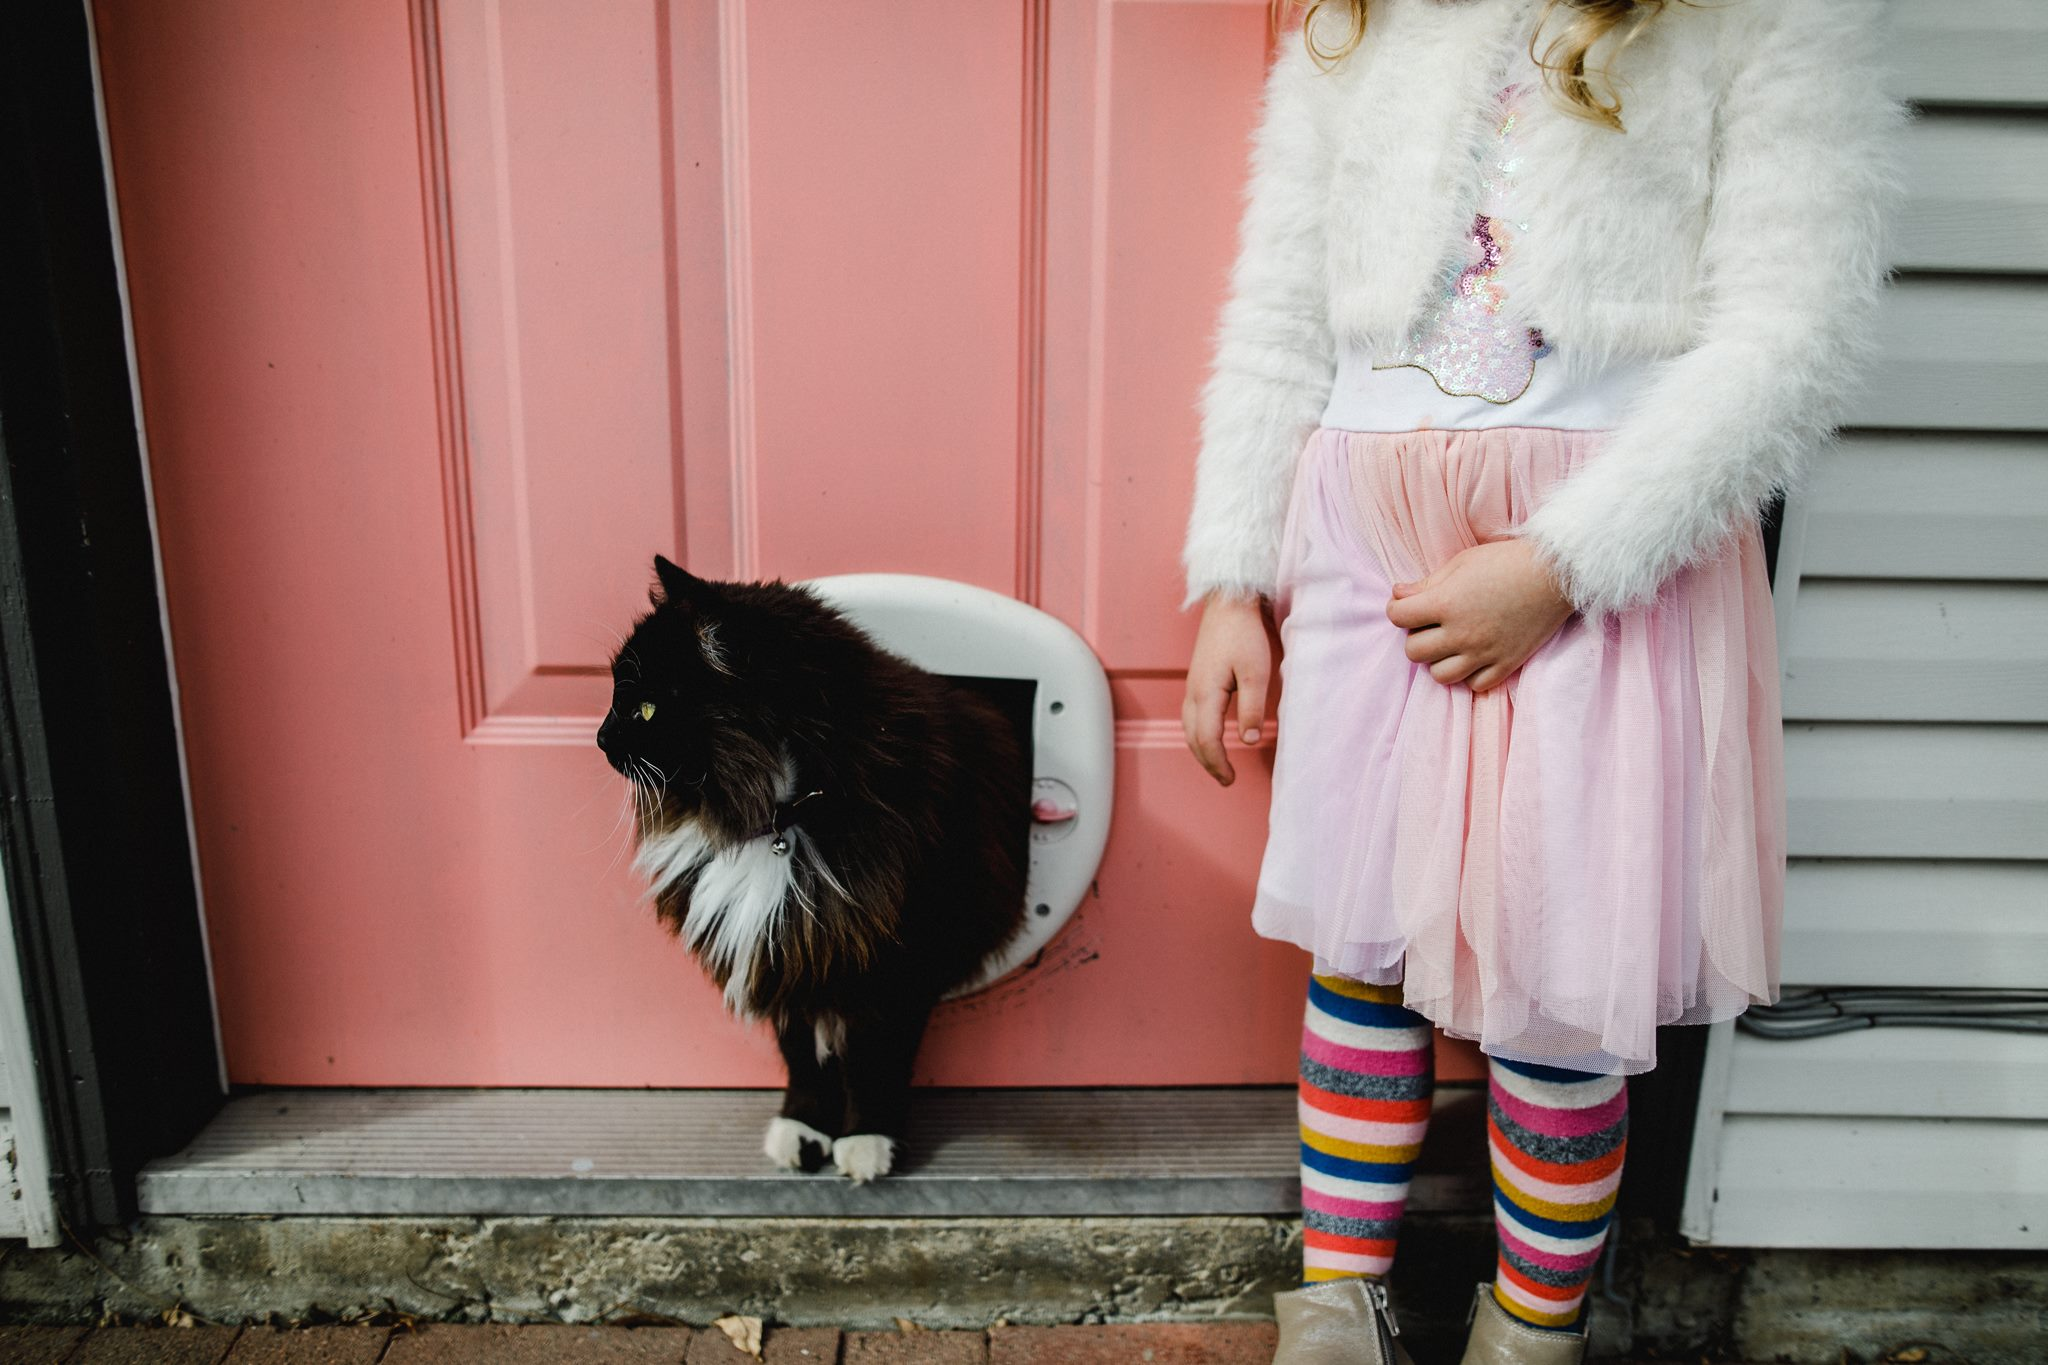 documentary kid pictures, lifestyle childhood pictures, cat and little girl, little girl style